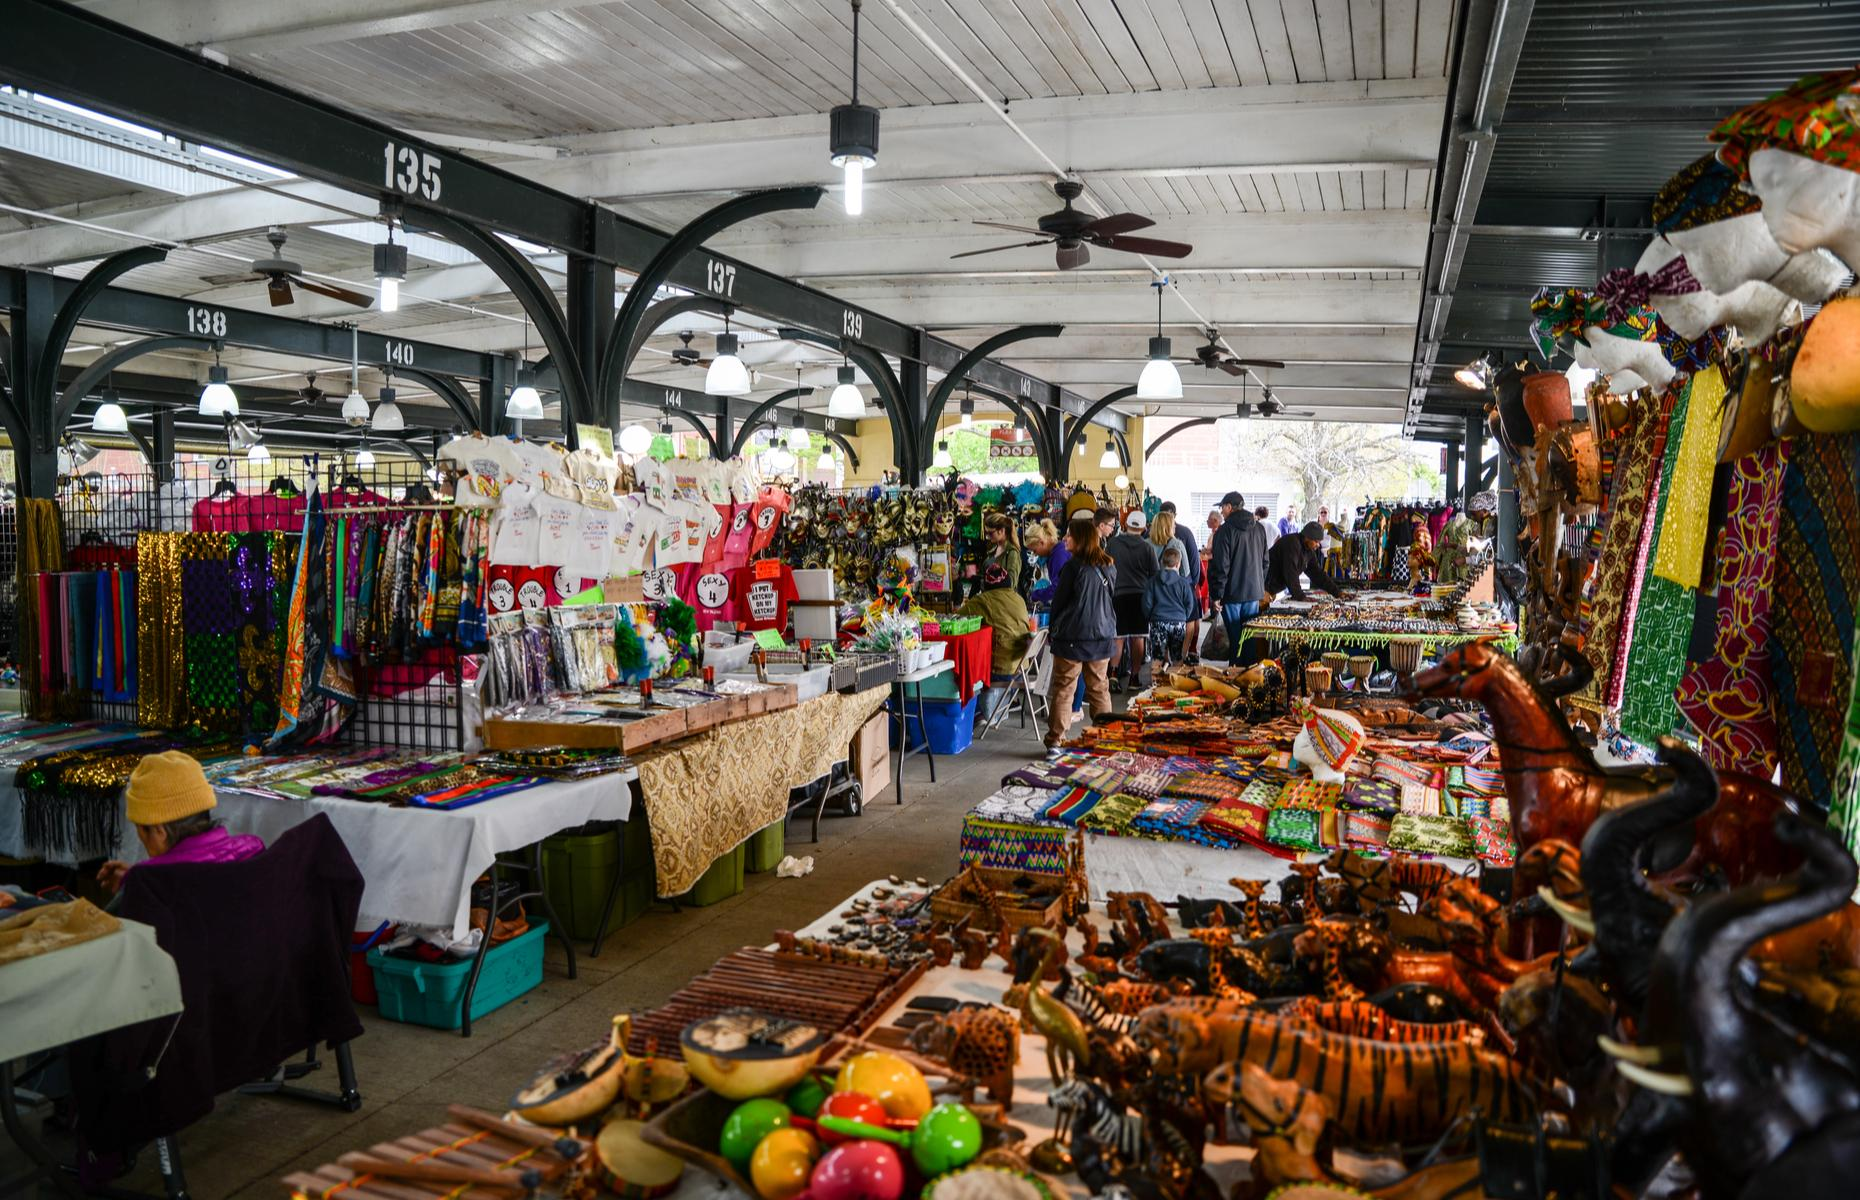 French Market in New Orleans (image: Suzanne C. Grim/Shutterstock)